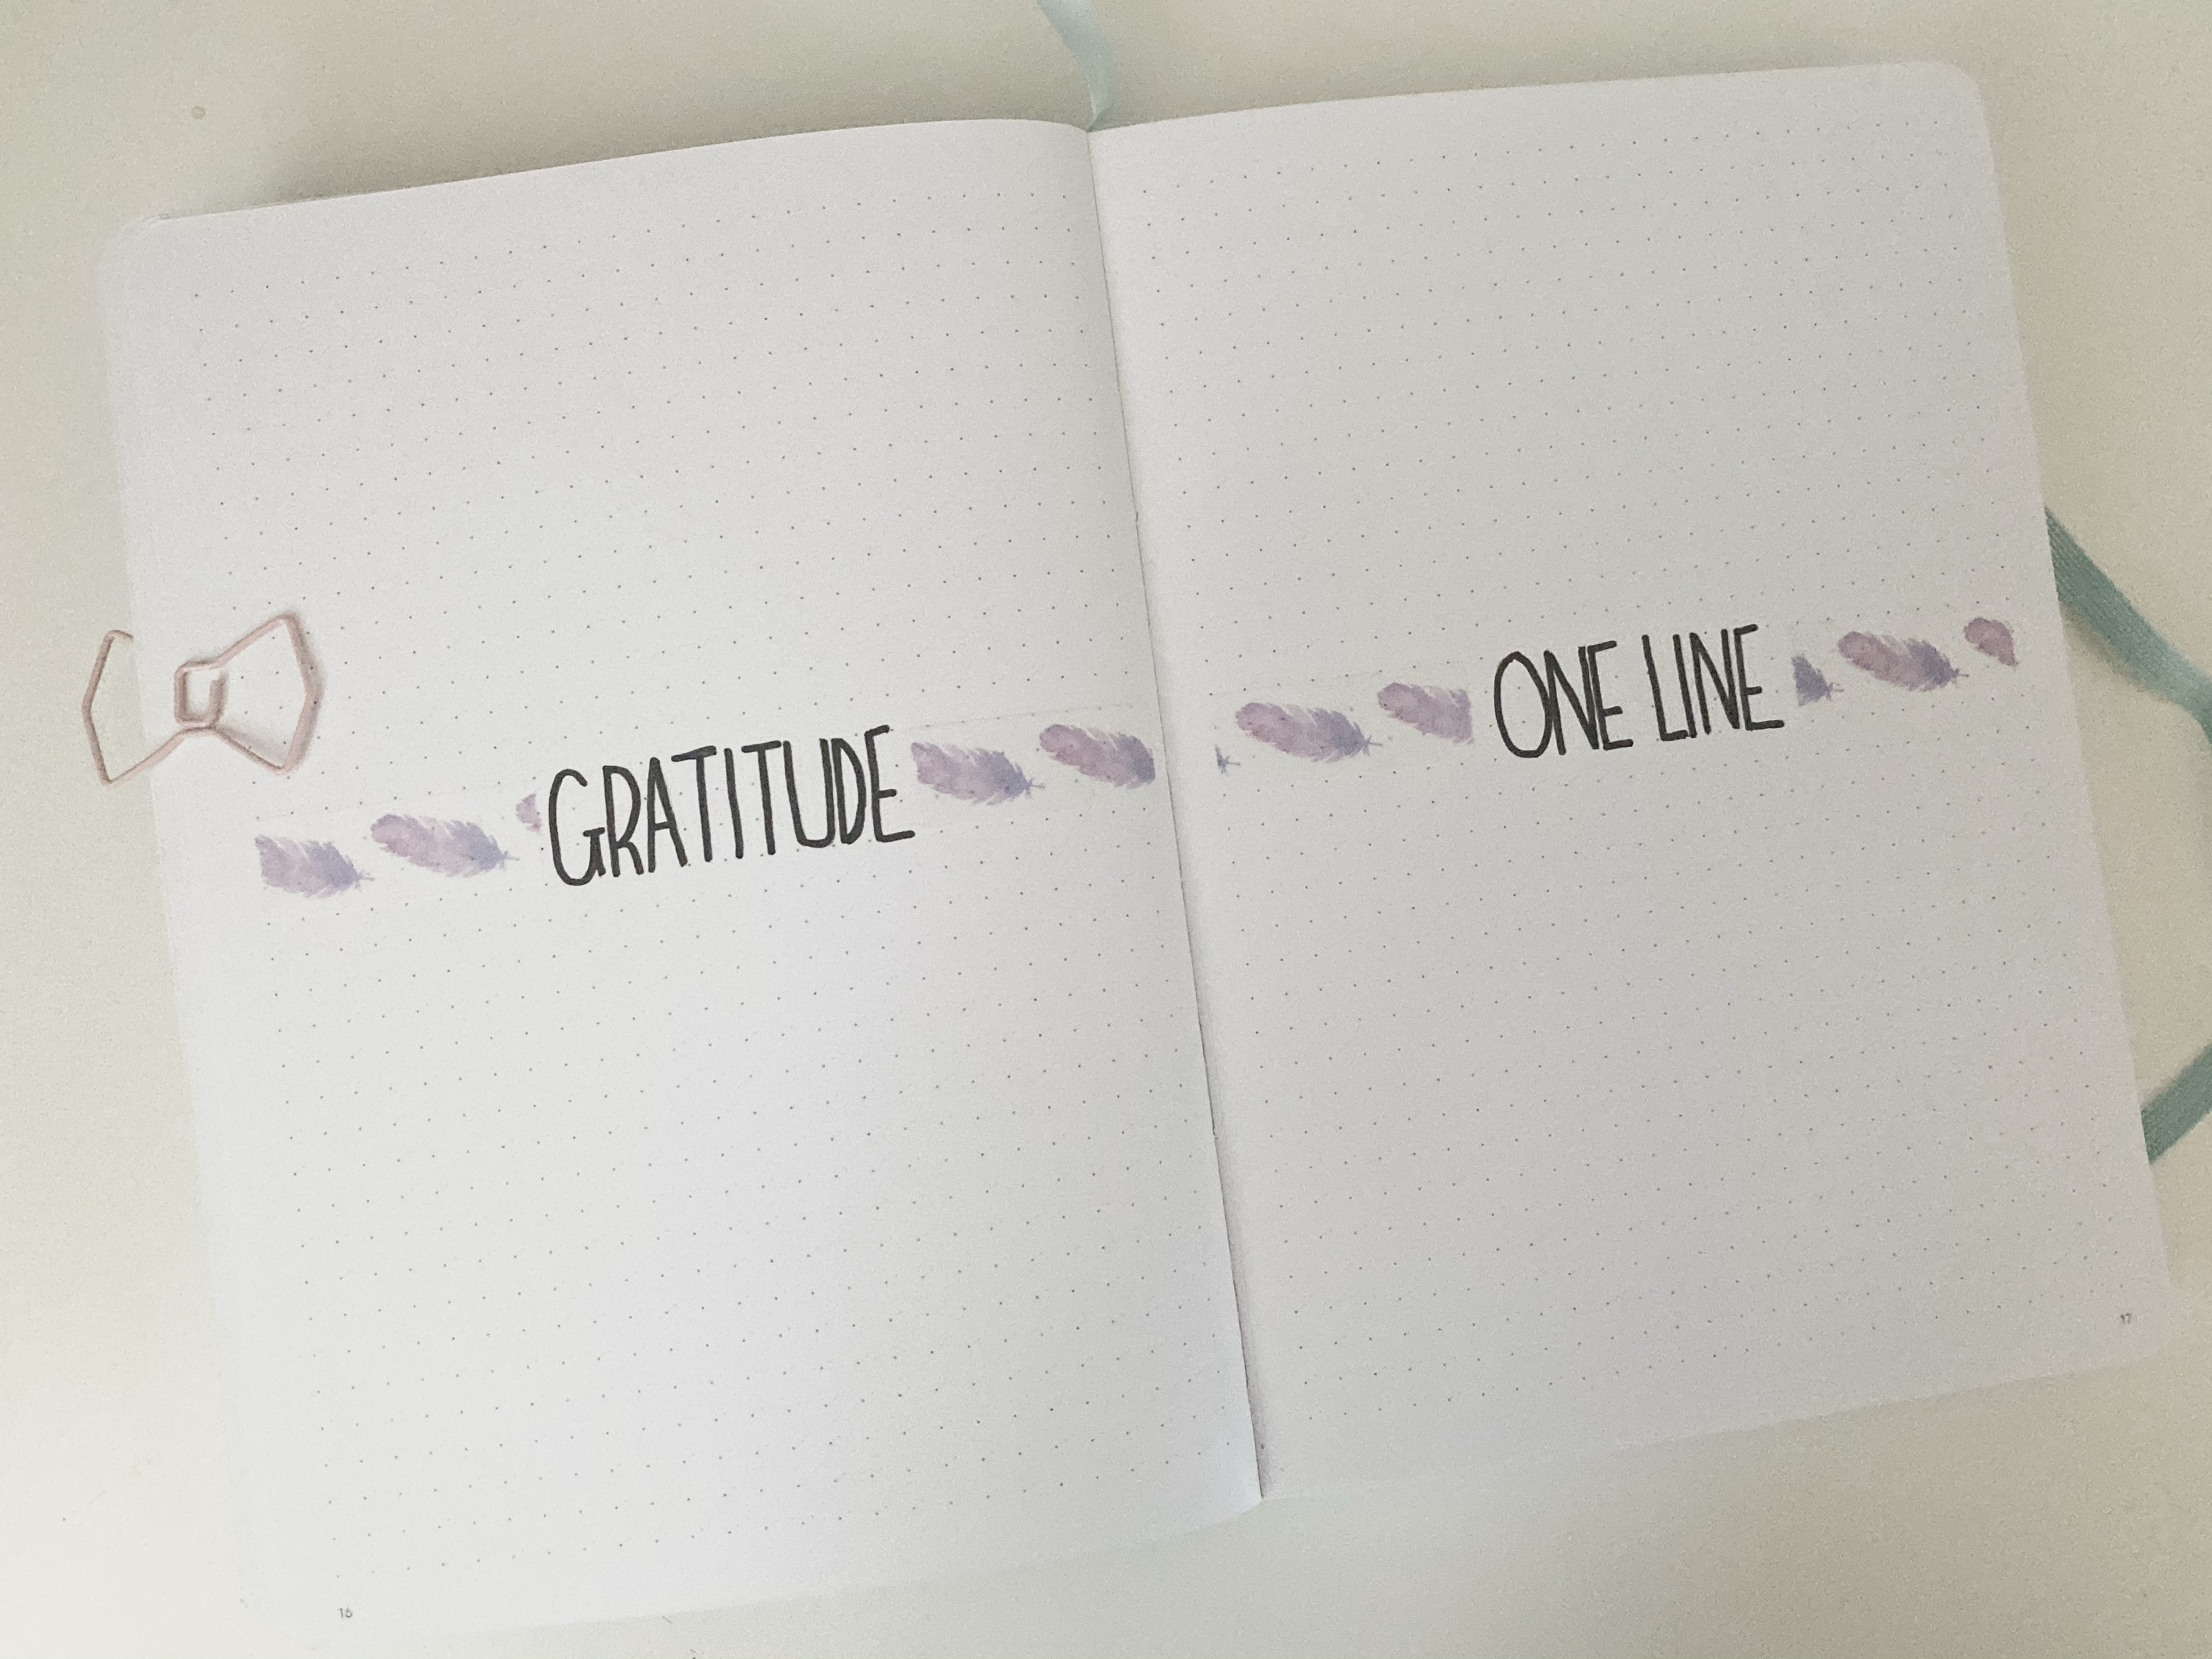 A double page bullet journal spread. On the left side is a gratitude tracker and on the right is the one line of your day tracker. Both page are decorated with purple feather washi tape.